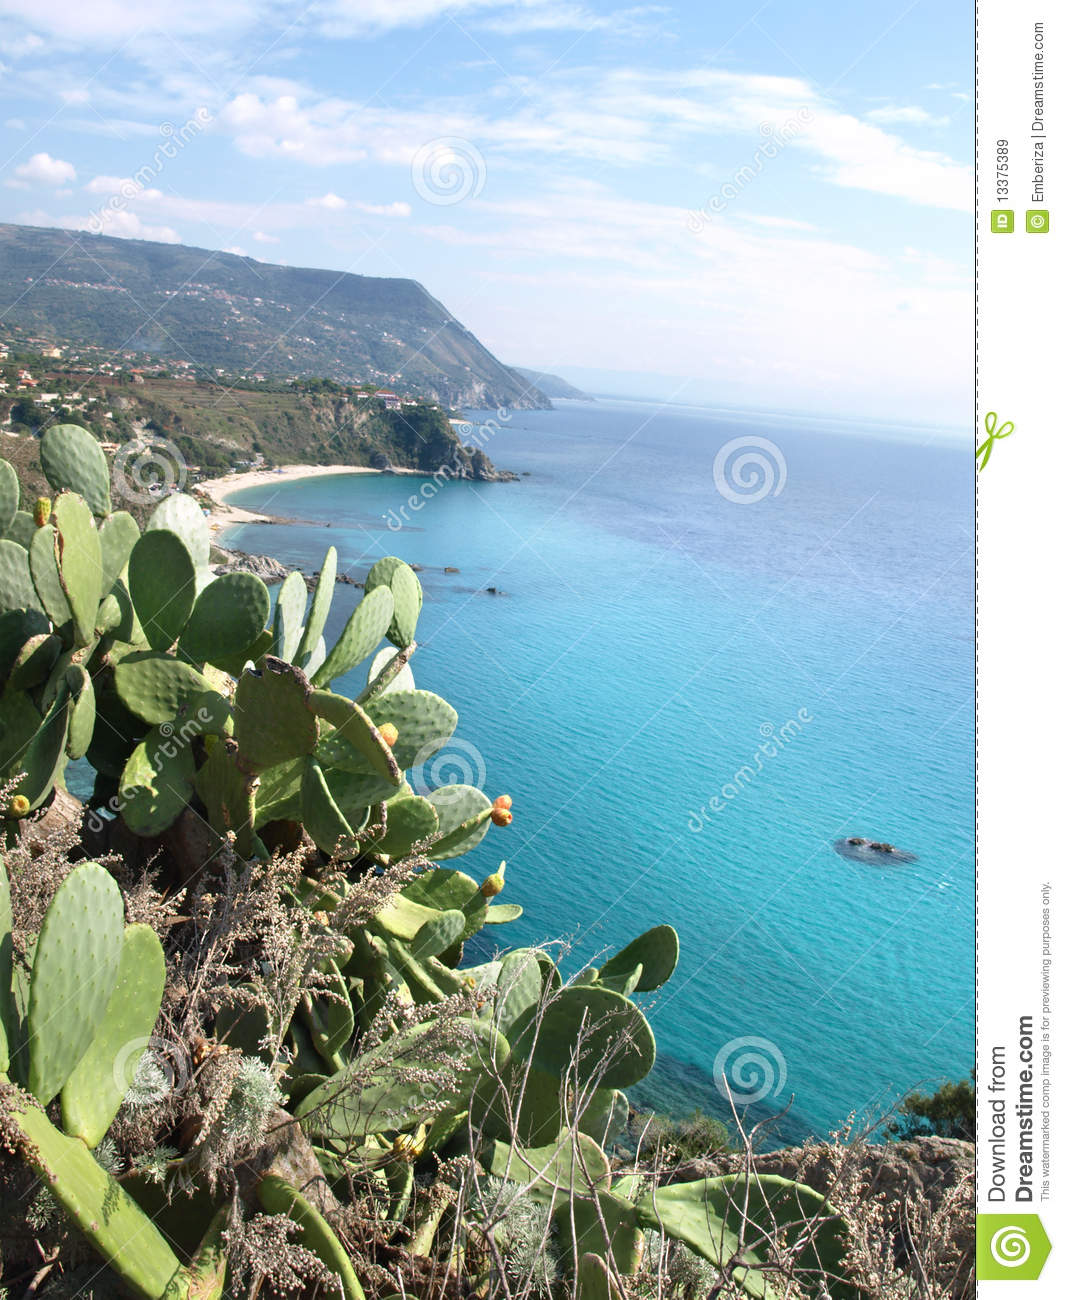 Capo Vaticano Italy  city photos gallery : Capo Vaticano, Calabria, Italy Royalty Free Stock Images Image ...